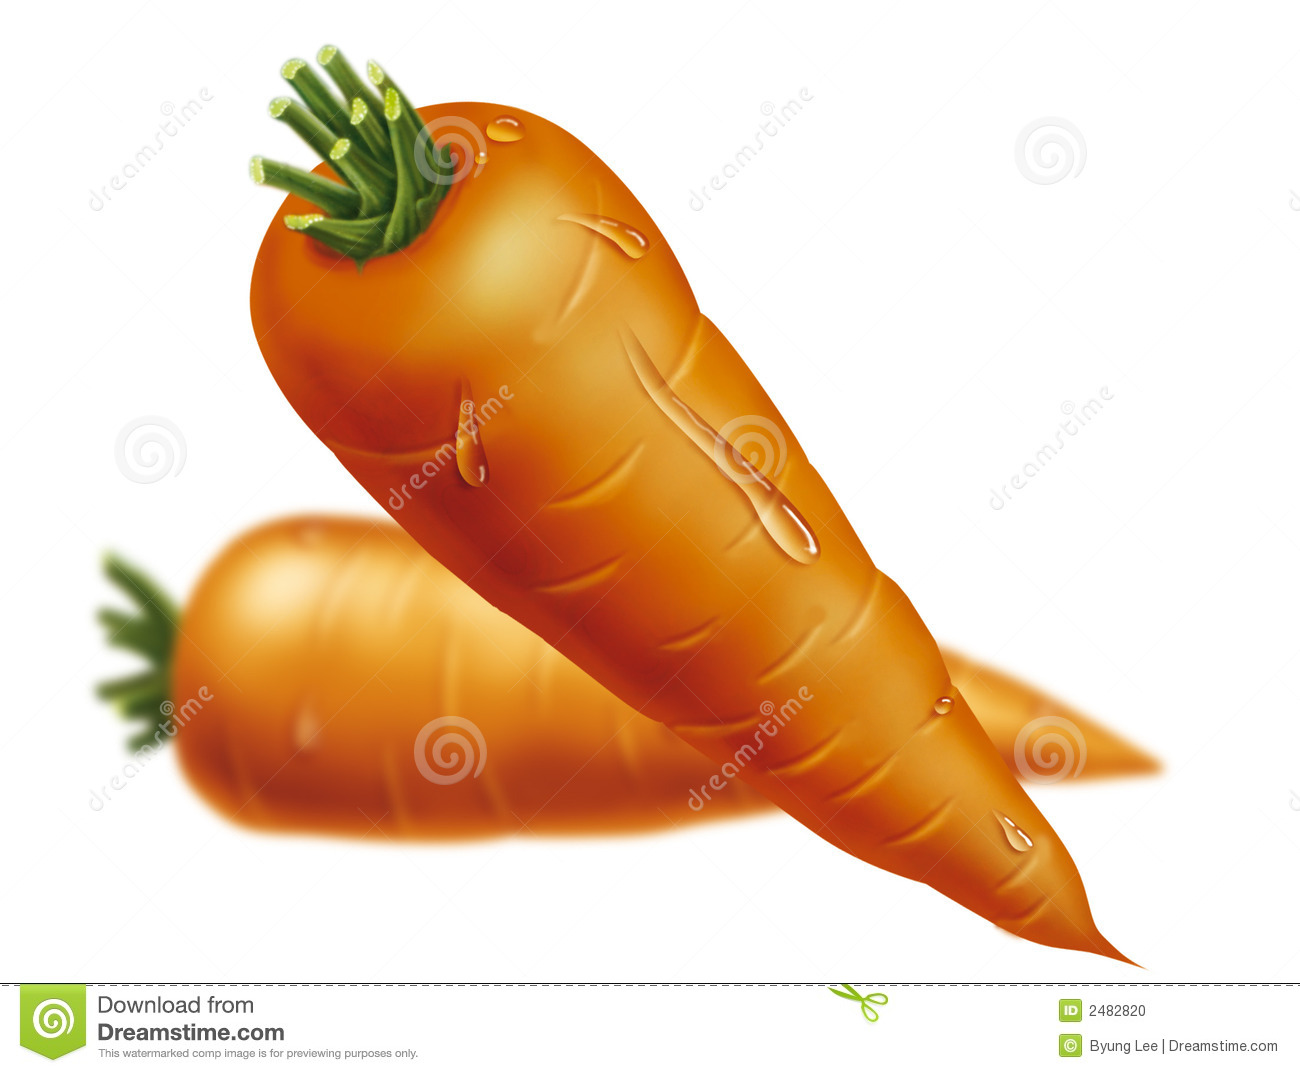 Carrots Drawing Stock Photo - Image: 2482820